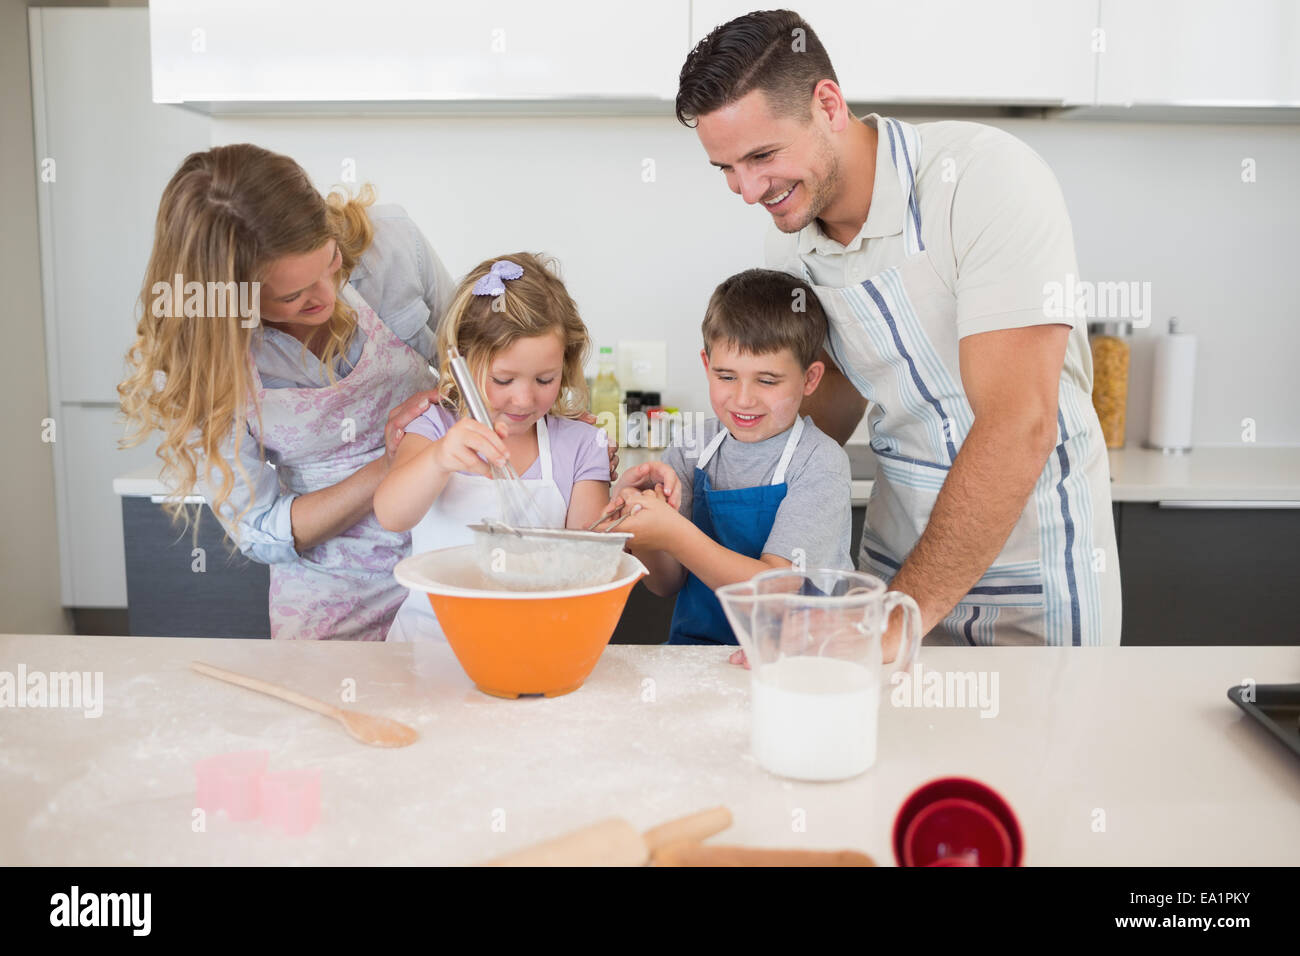 Family preparing cookies at kitchen counter - Stock Image